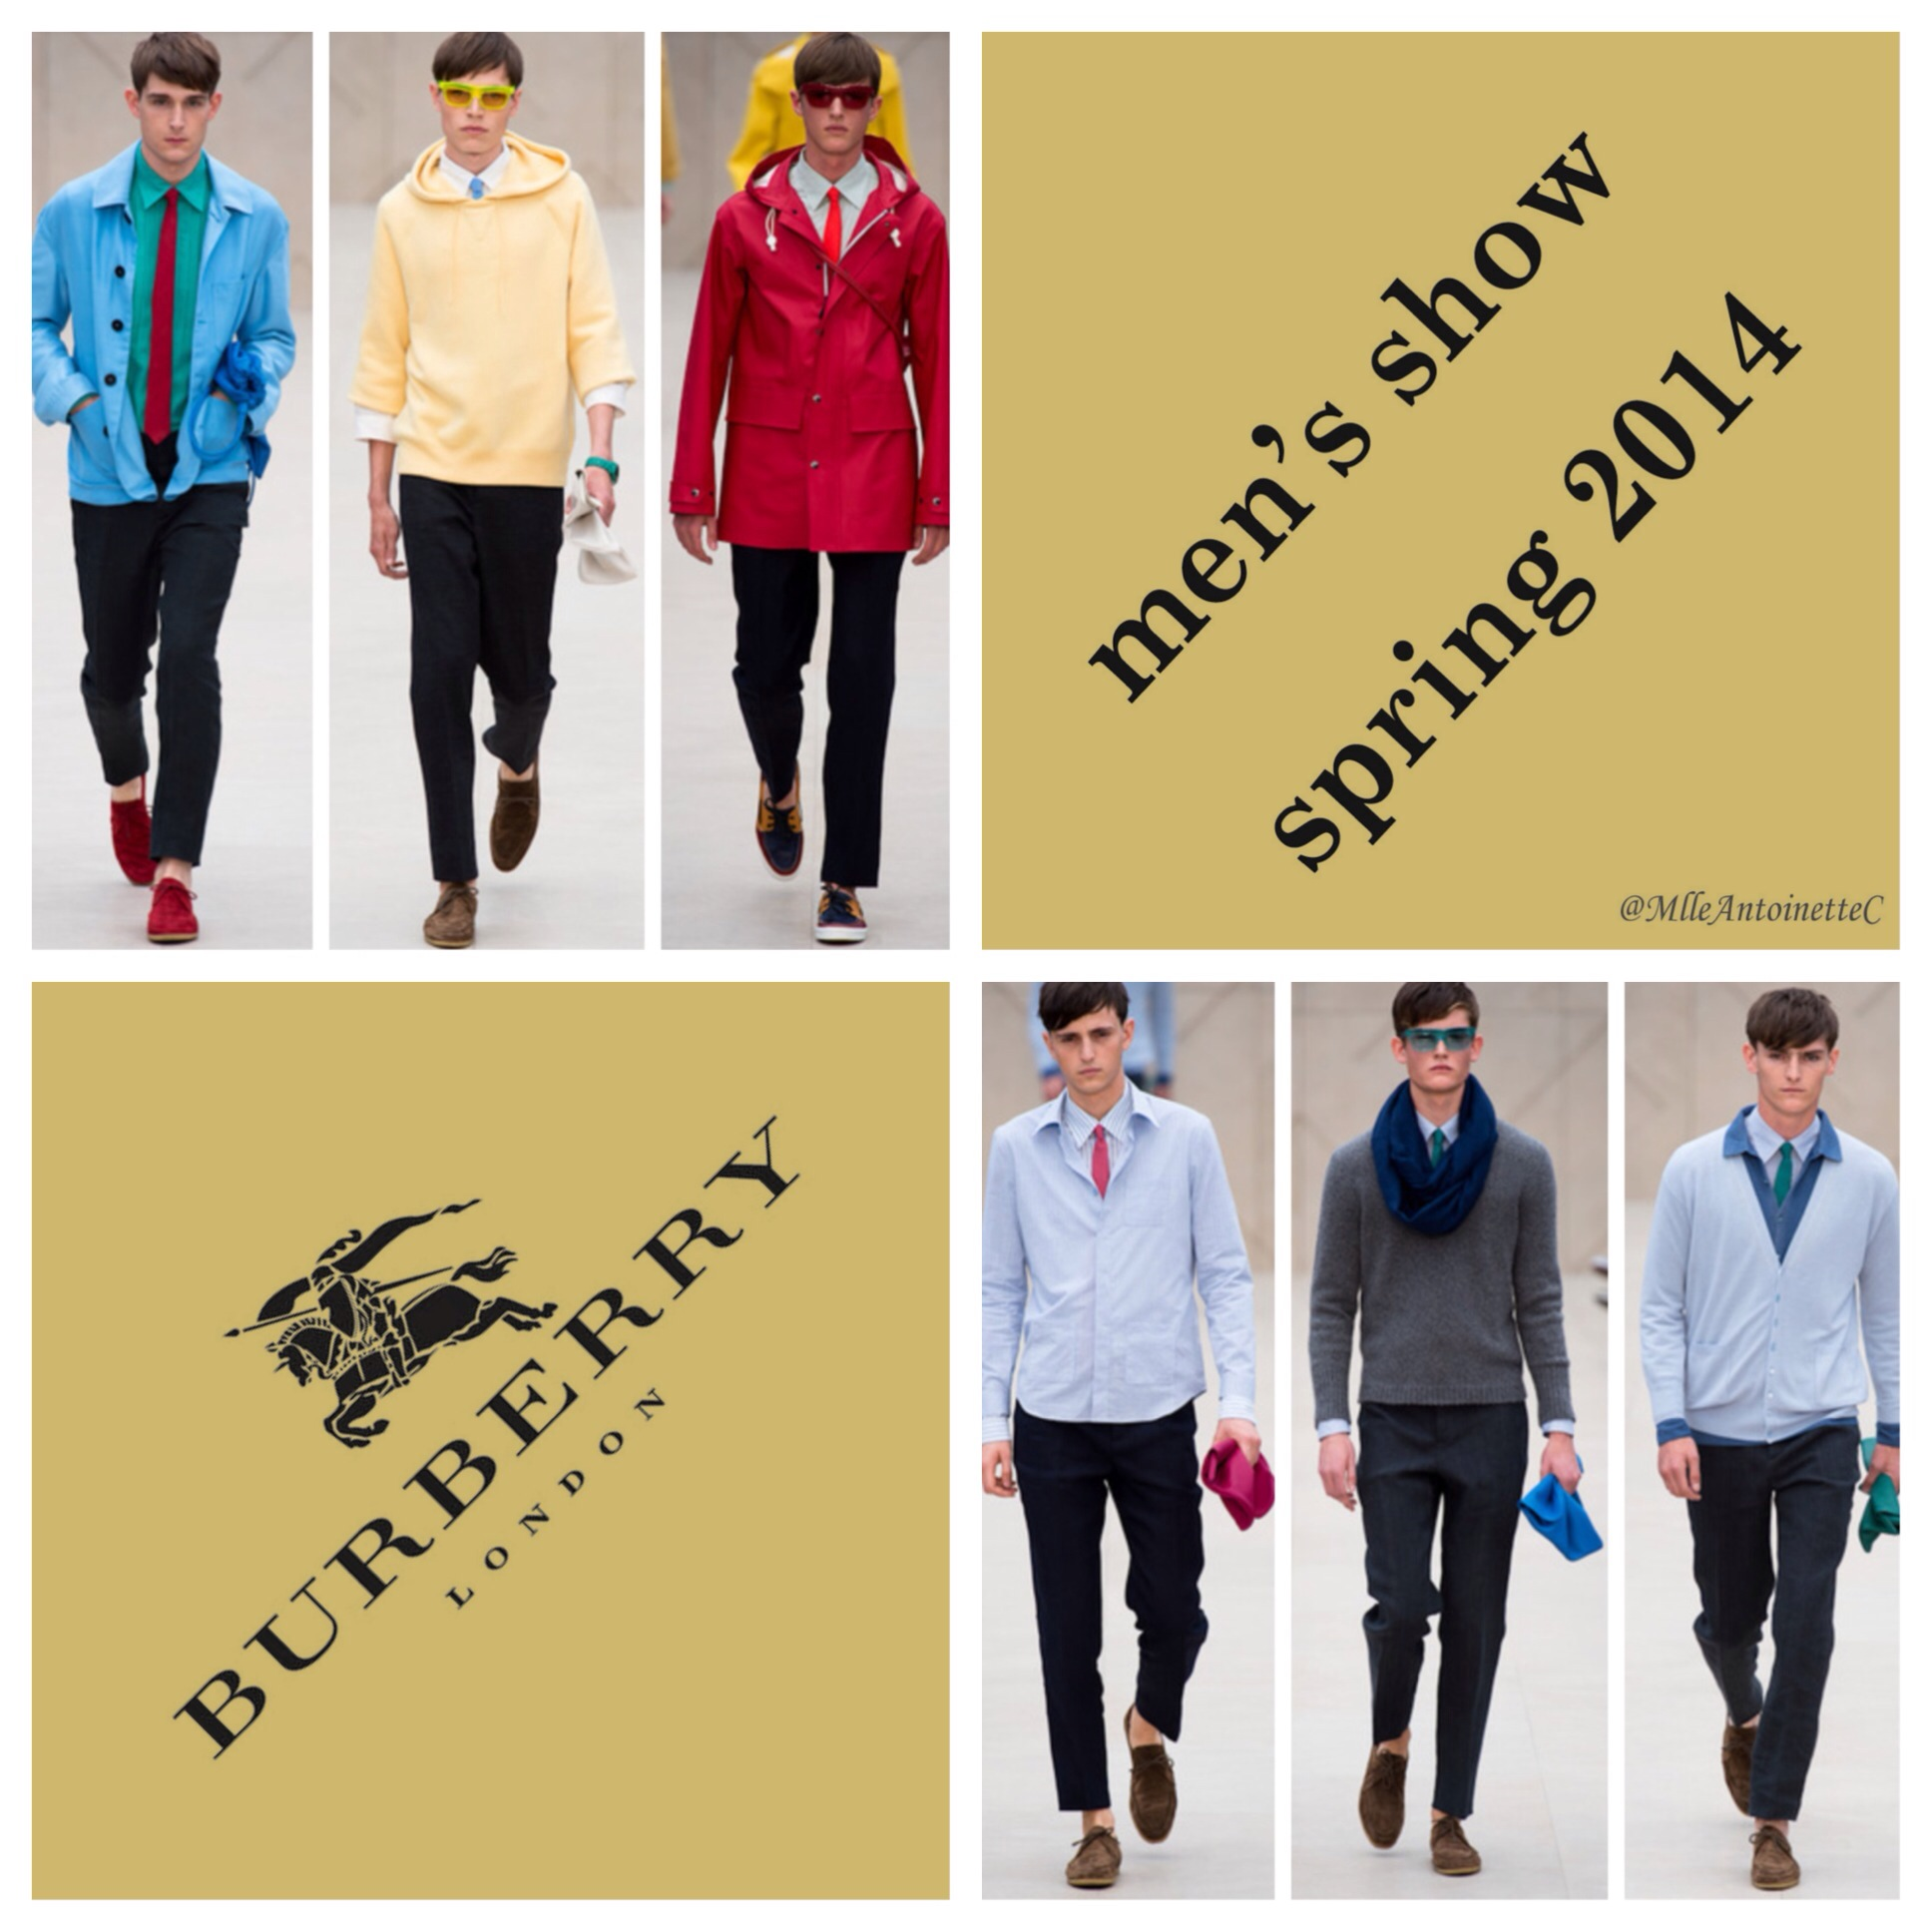 Burberry Menswear Show Sriing 2014